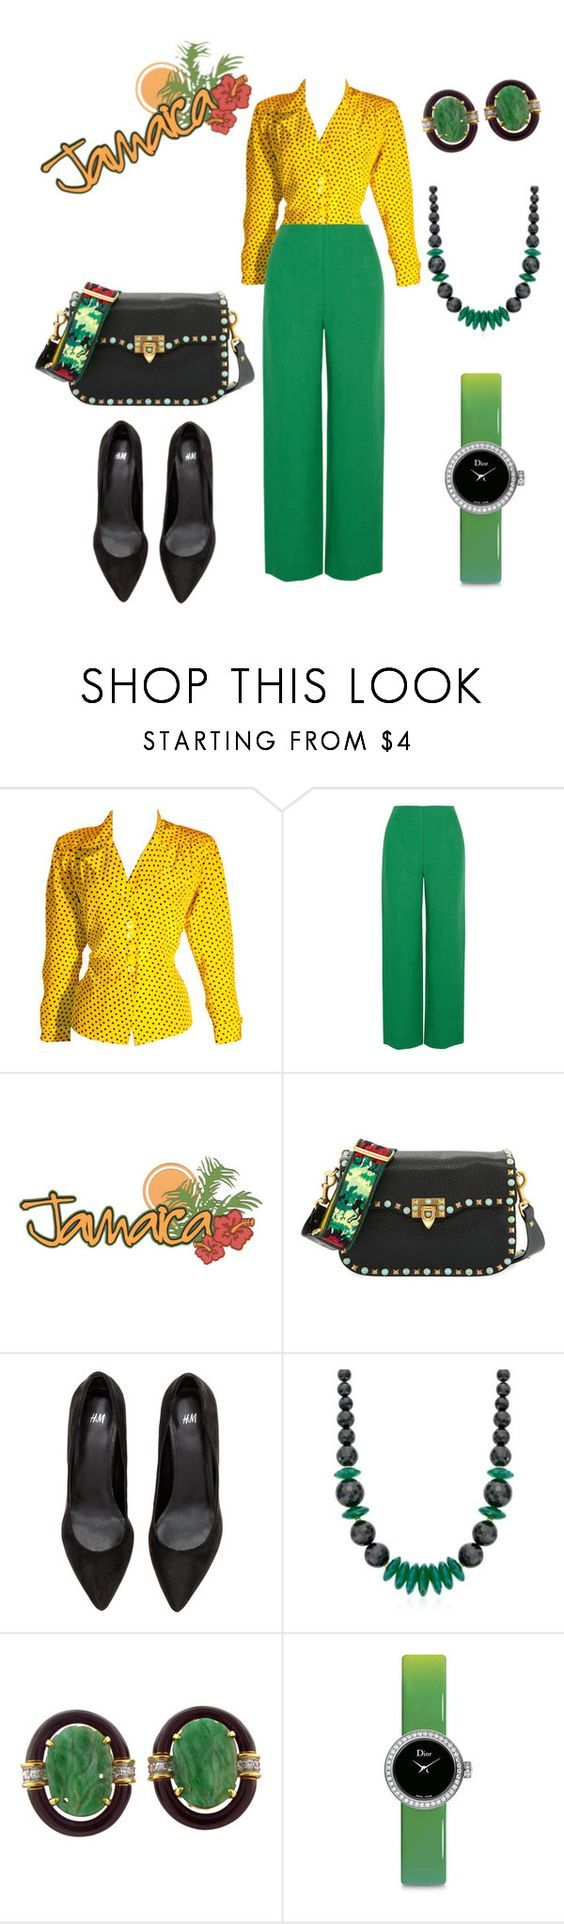 """""""Happy Independence Day Jamaica"""" by commerce-closet ❤ liked on Polyvore featuring Yves Saint Laurent, Isa Arfen, Valentino, Ross-Simons, David Webb and Christian Dior"""